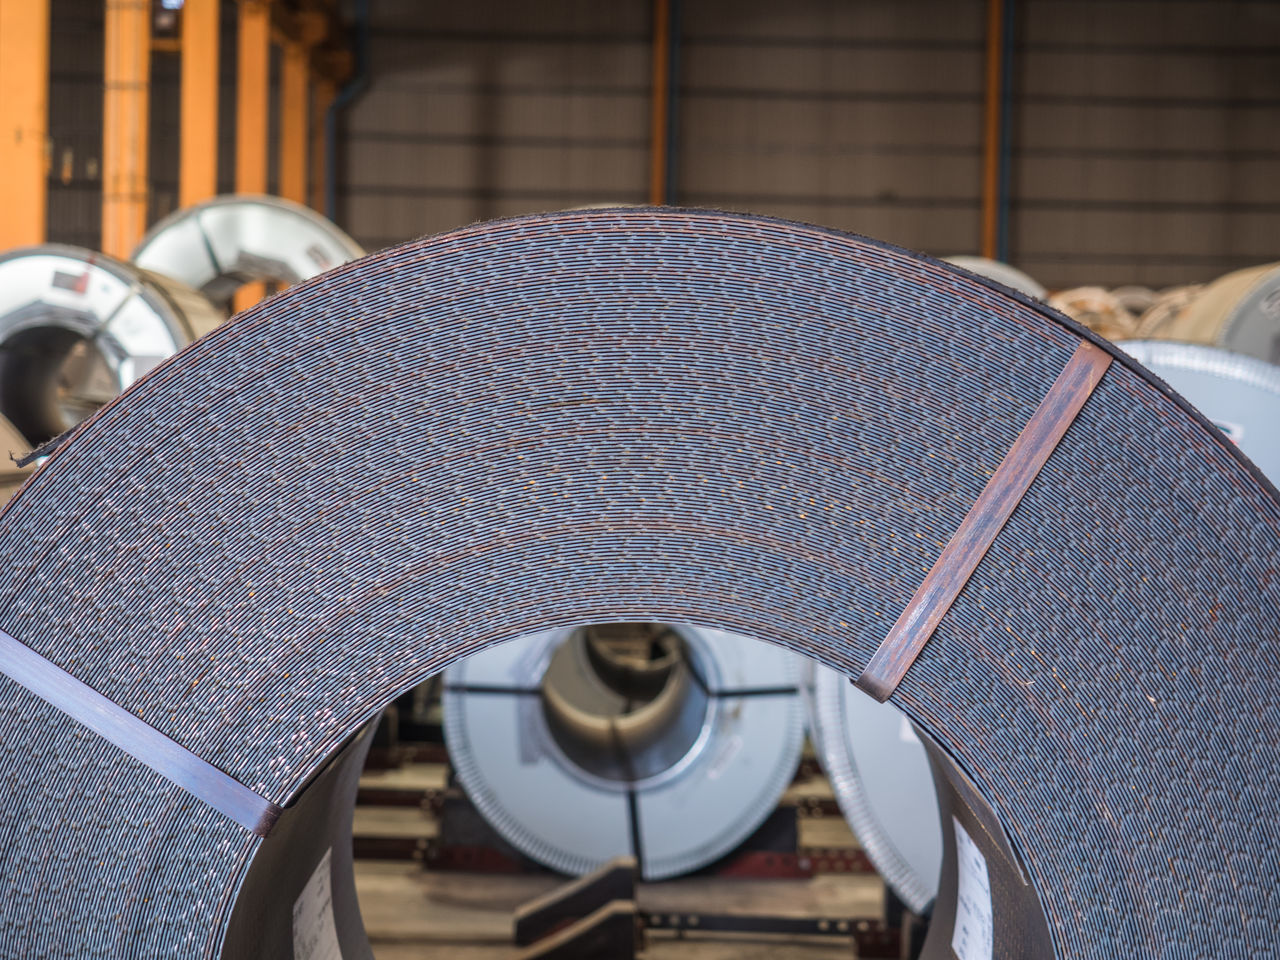 close up rolls of steel sheet Indoors  Technology Close-up No People coil steel Industry Indoors  Safety Shipping  Warehouse Storage stack Roll hot roll coil Transportation Handling Zinc Heavy Metal Heavy Plate Structure Iron sheet Shape Rod logistics Material rusty Automotive auto